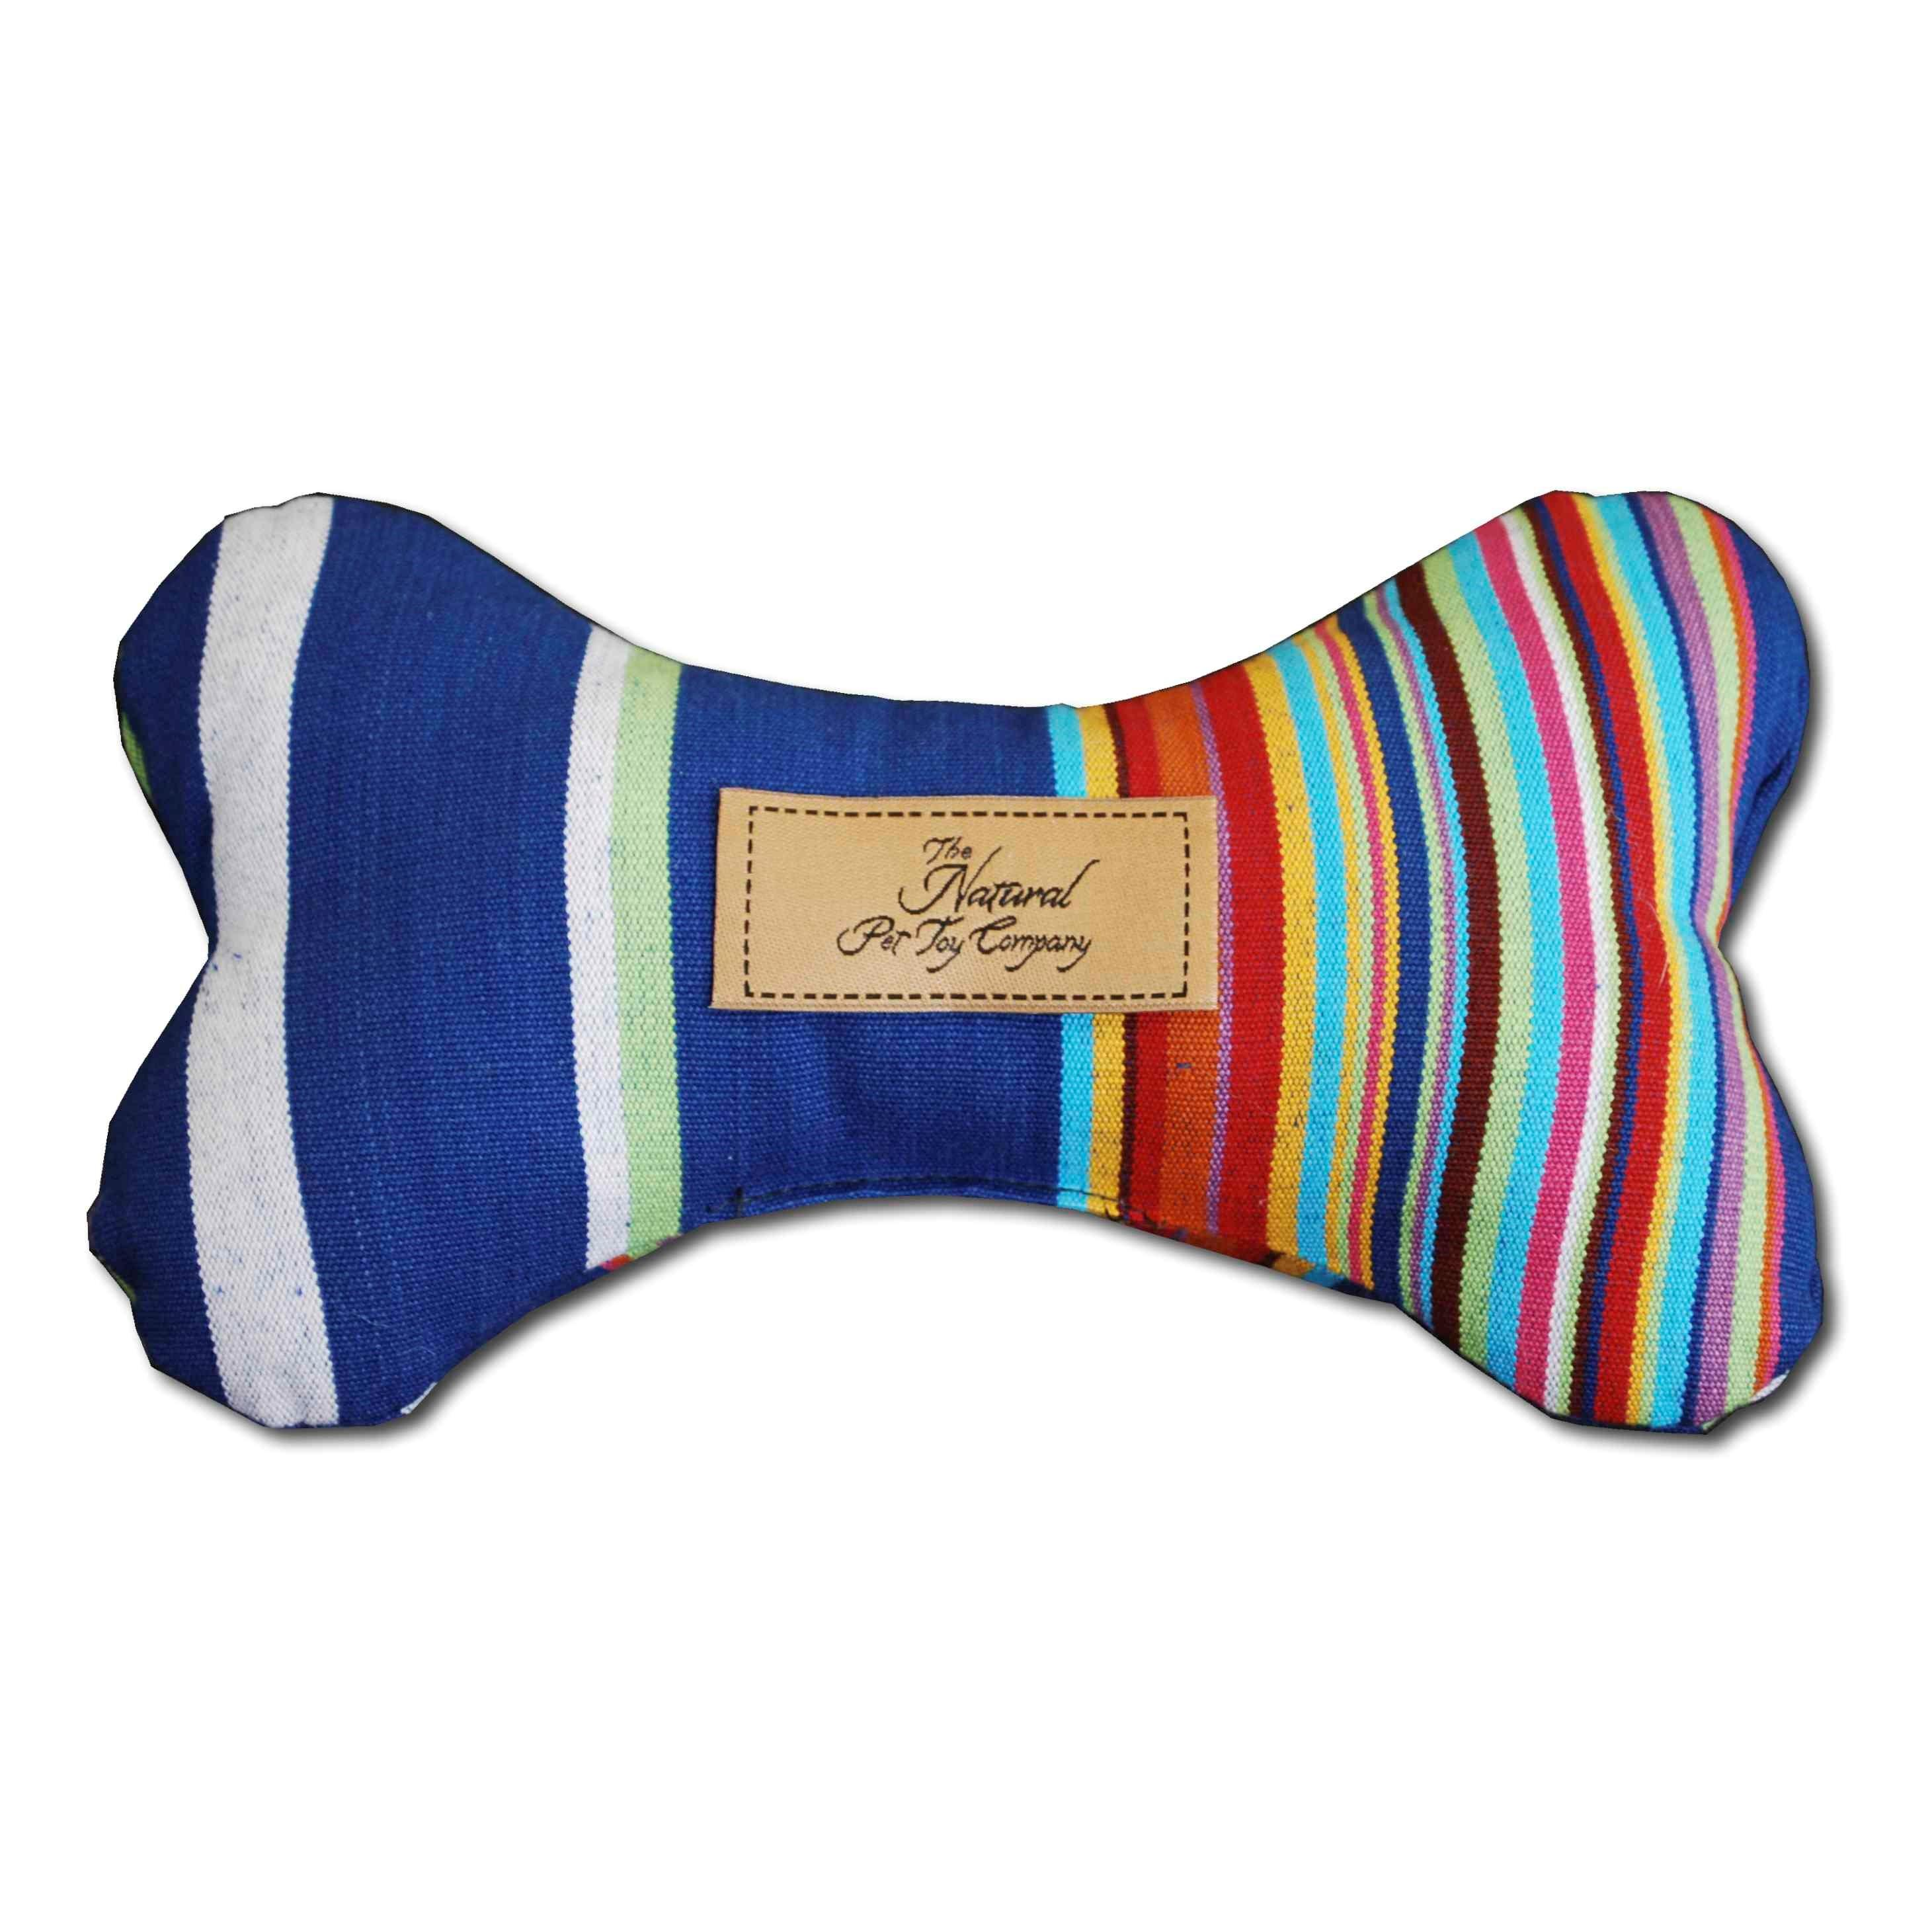 Luxury bone dog toy with aniseed